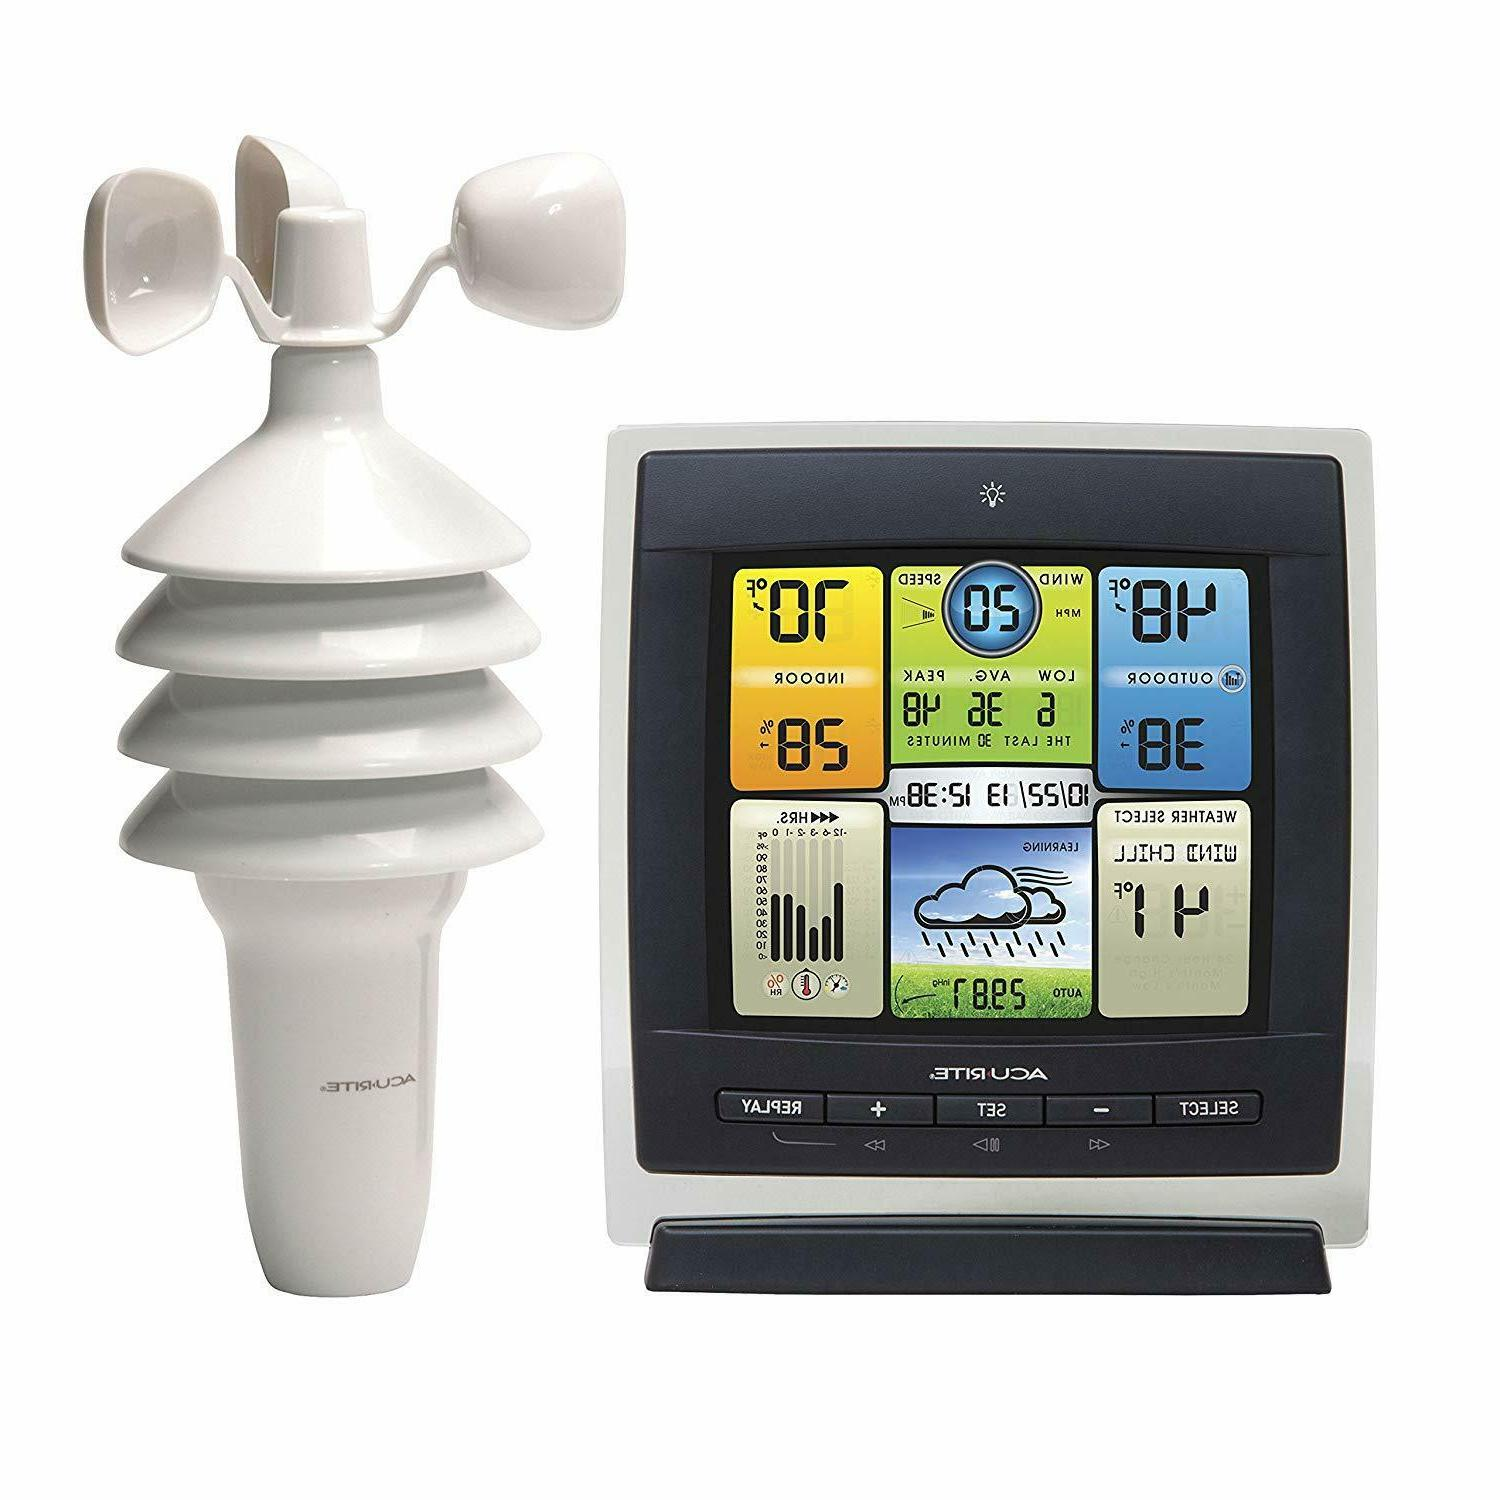 00589 pro color weather station with wind